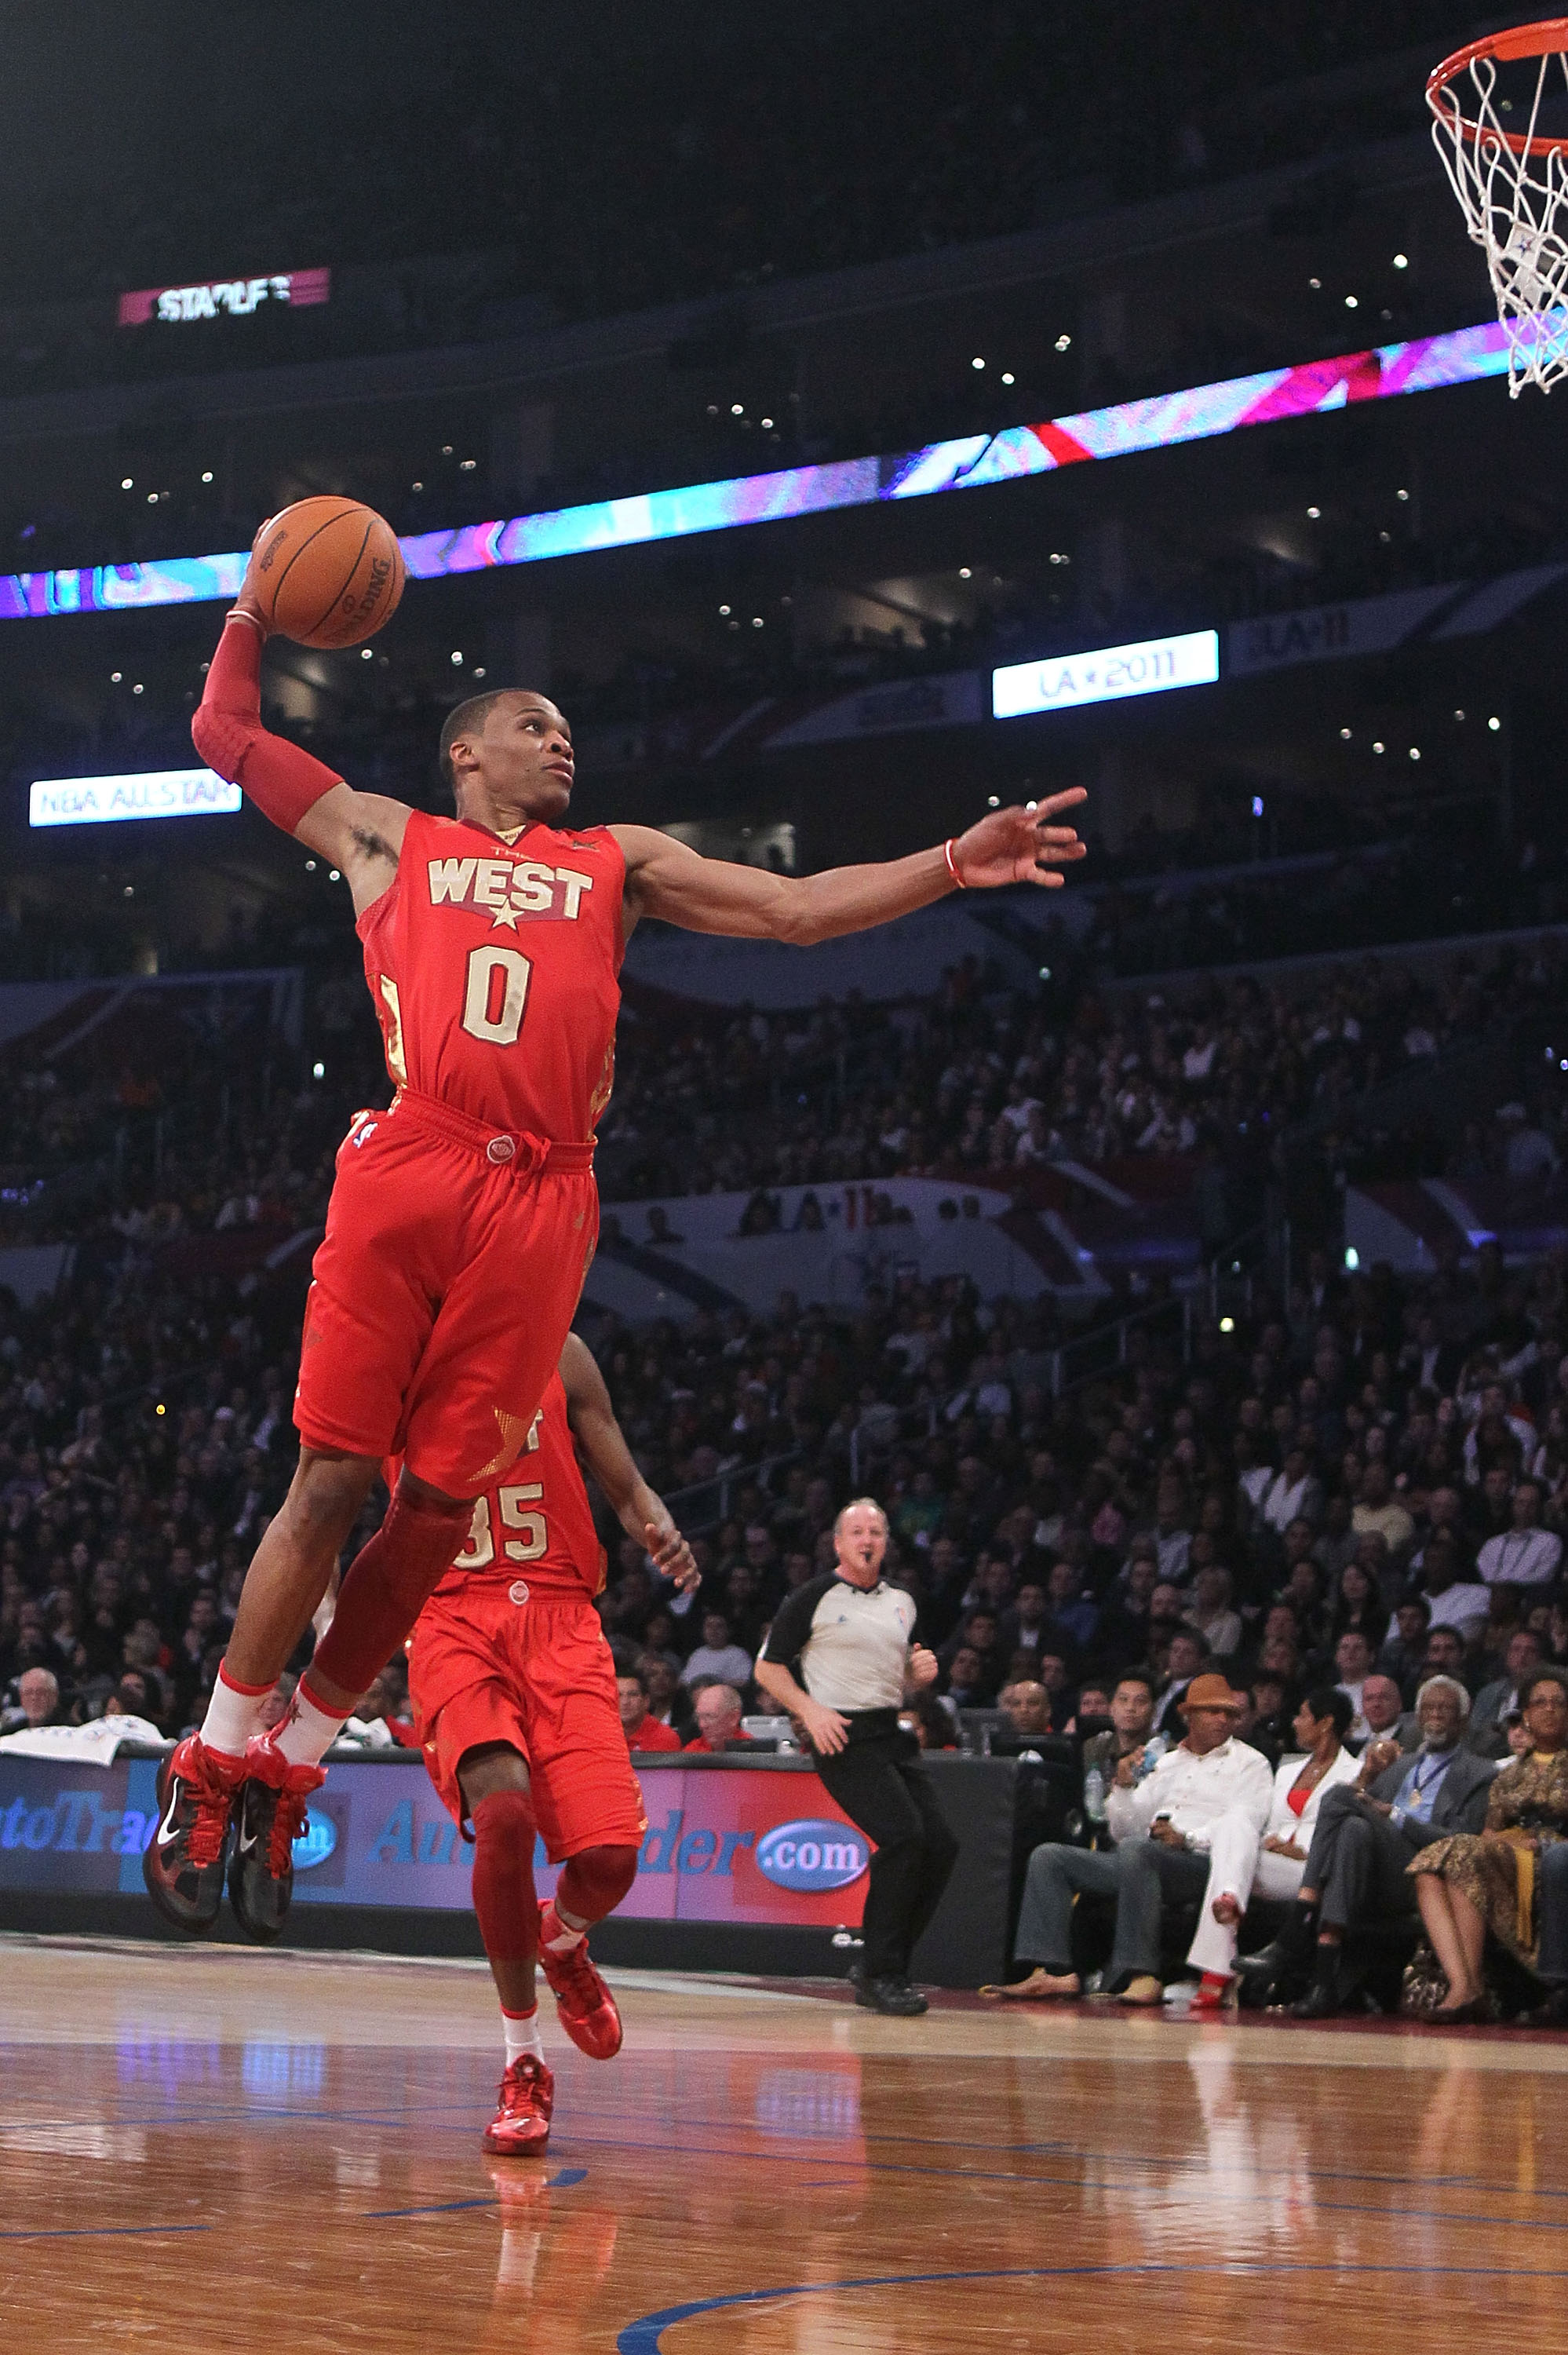 LOS ANGELES, CA - FEBRUARY 20:  Russell Westbrook #0 of the Oklahoma City Thunder and the Western Conference goes up to dunk the ball in the first half in the 2011 NBA All-Star Game at Staples Center on February 20, 2011 in Los Angeles, California. NOTE T